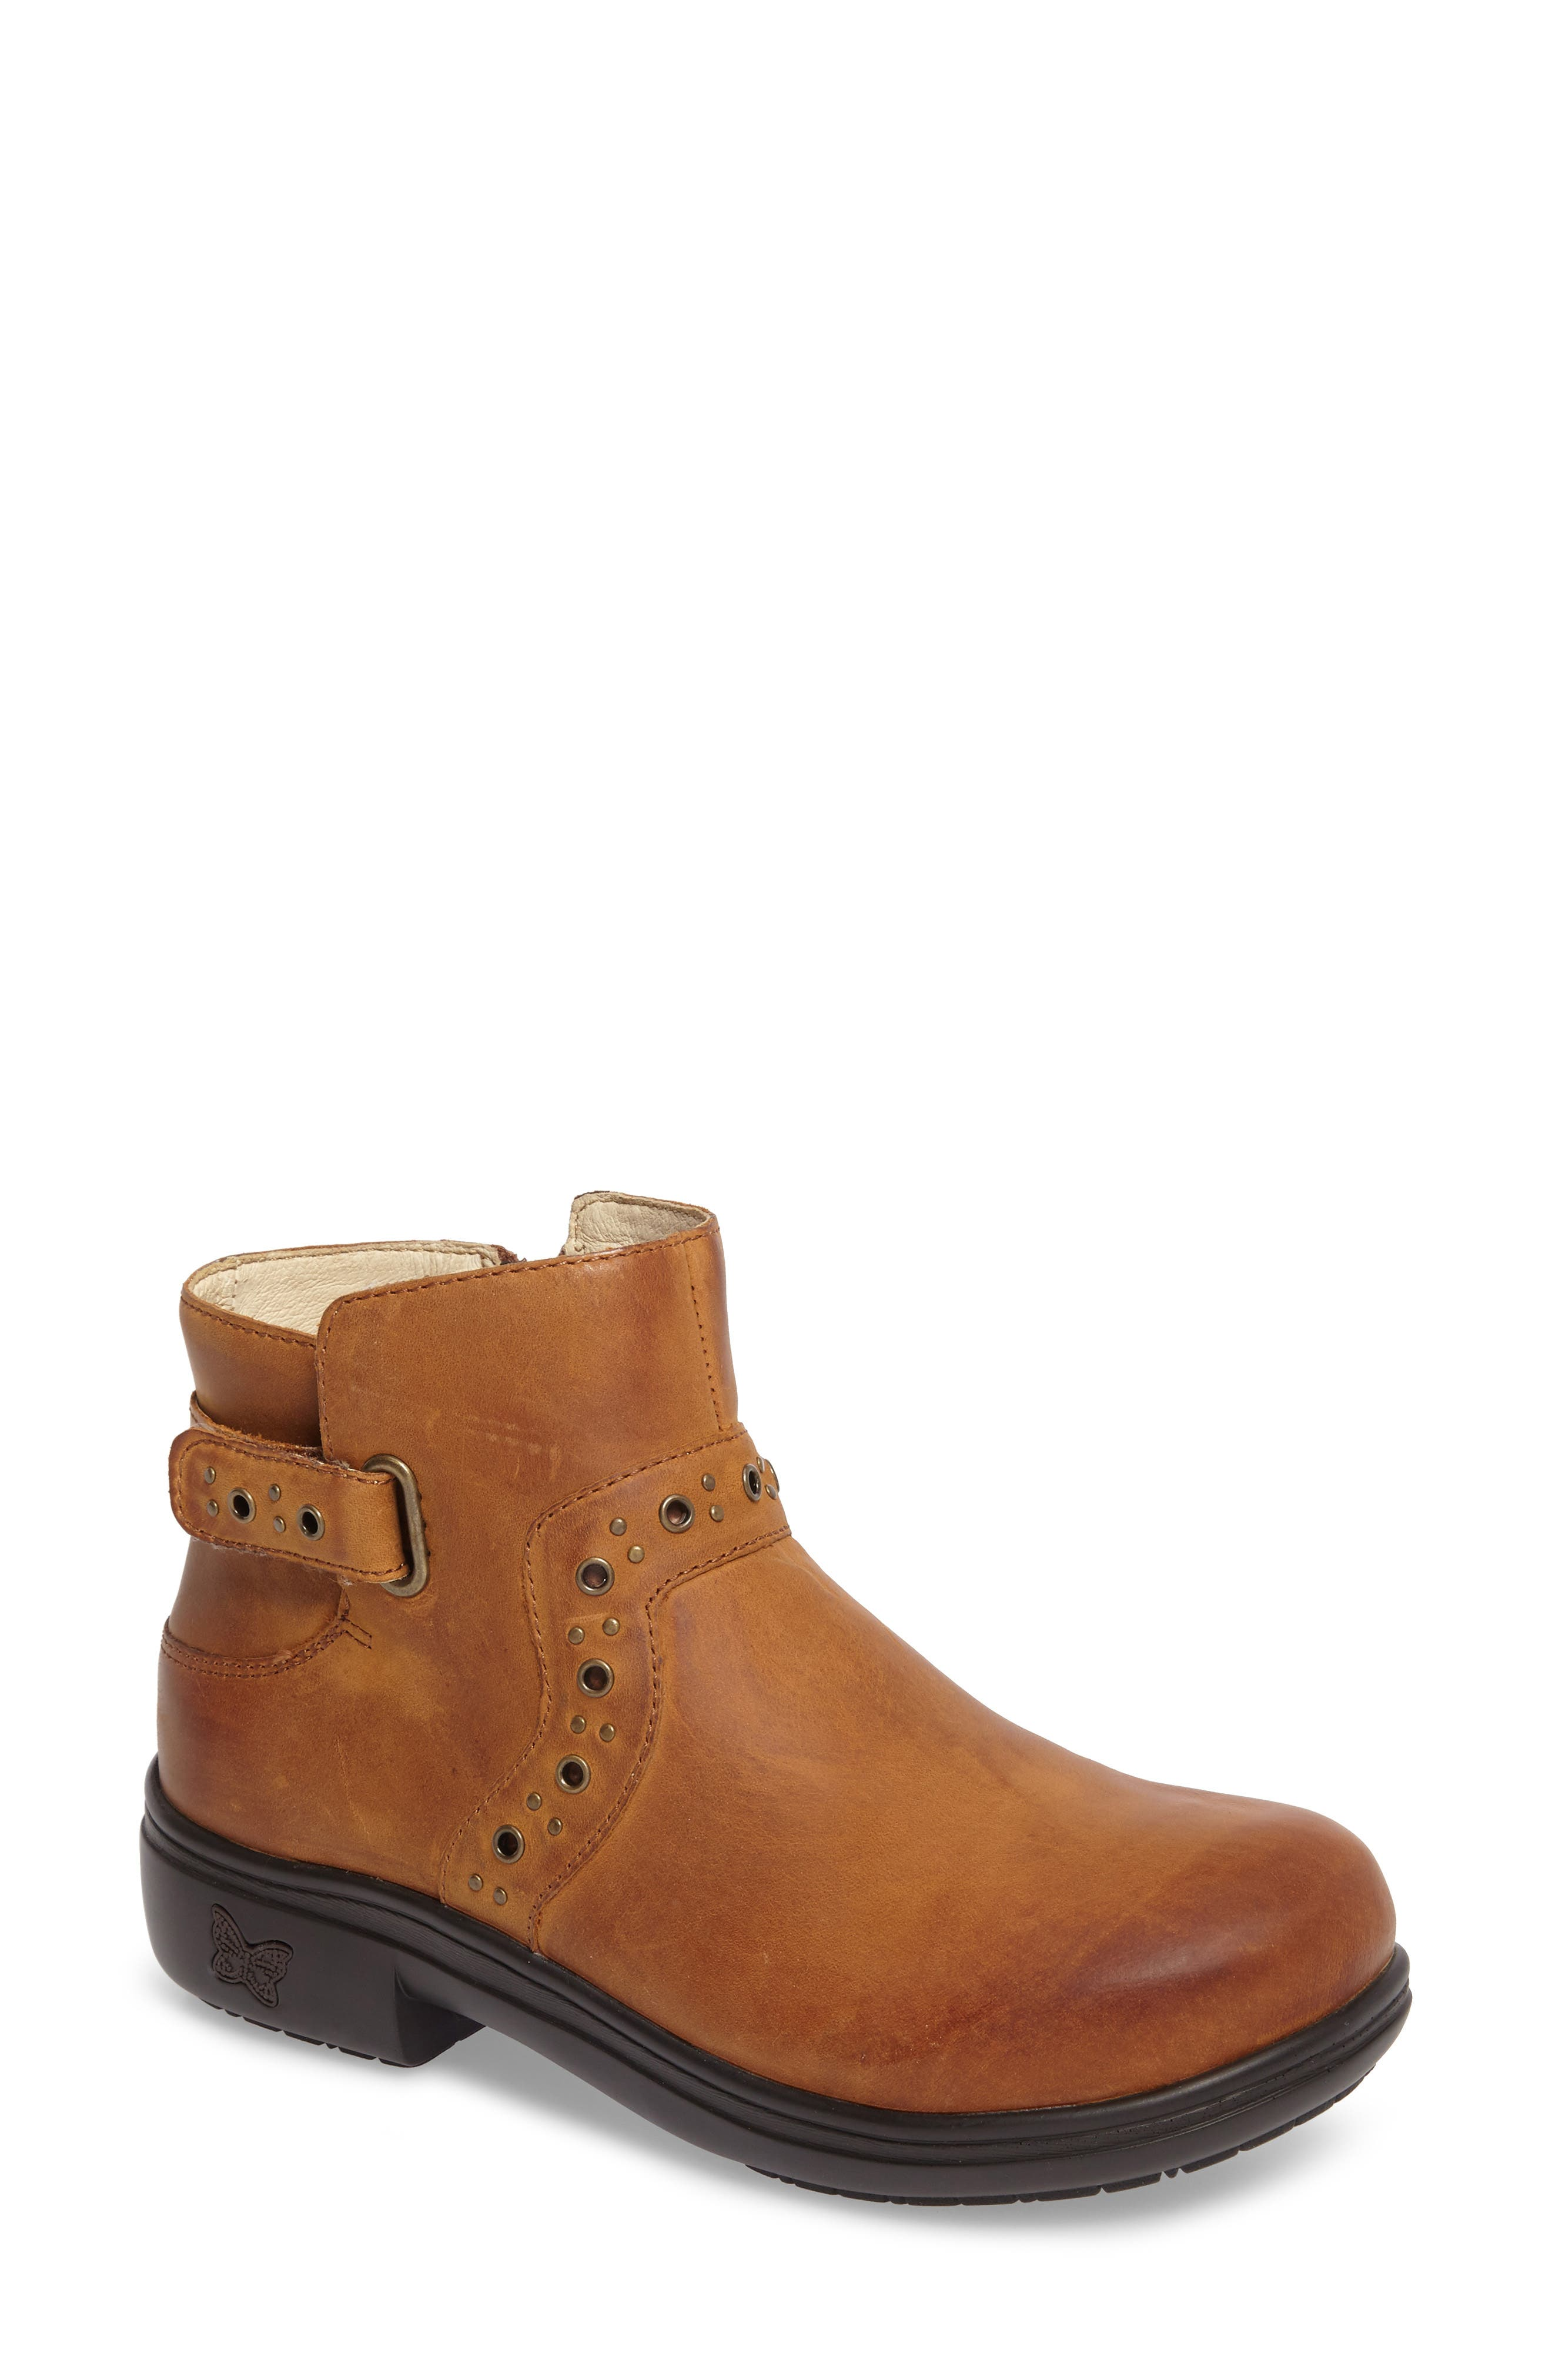 Zoey Ankle Boot,                             Main thumbnail 1, color,                             Walnut Leather